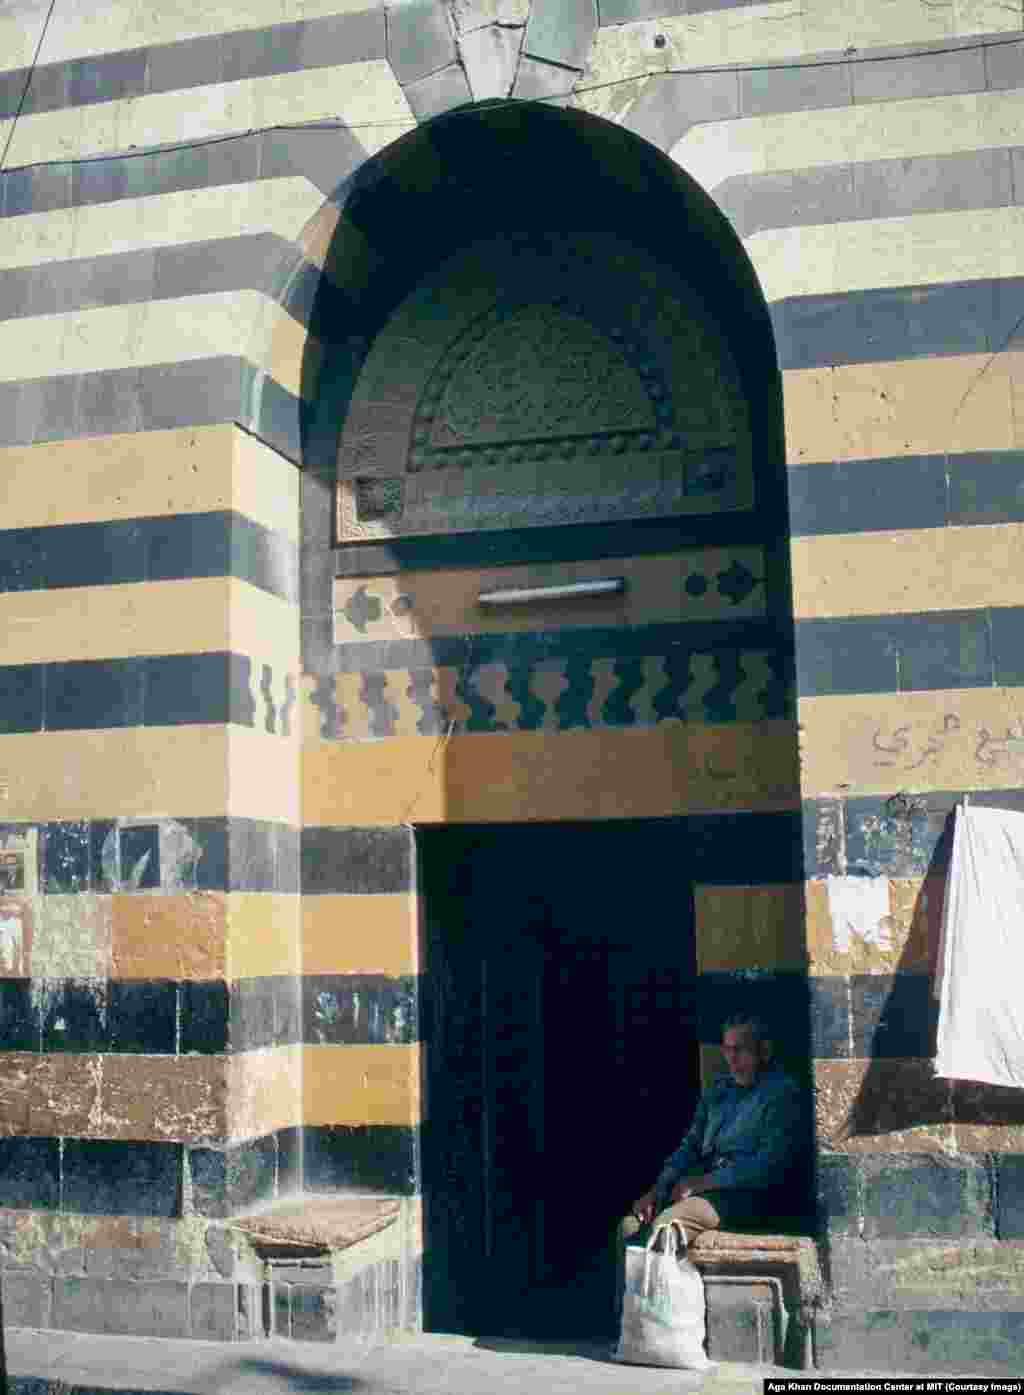 The entrance to a bathhouse in Aleppo in 1991. A degree of stability returned to Syria under Hafez al-Assad, but the tactics of his security services were ruthless.